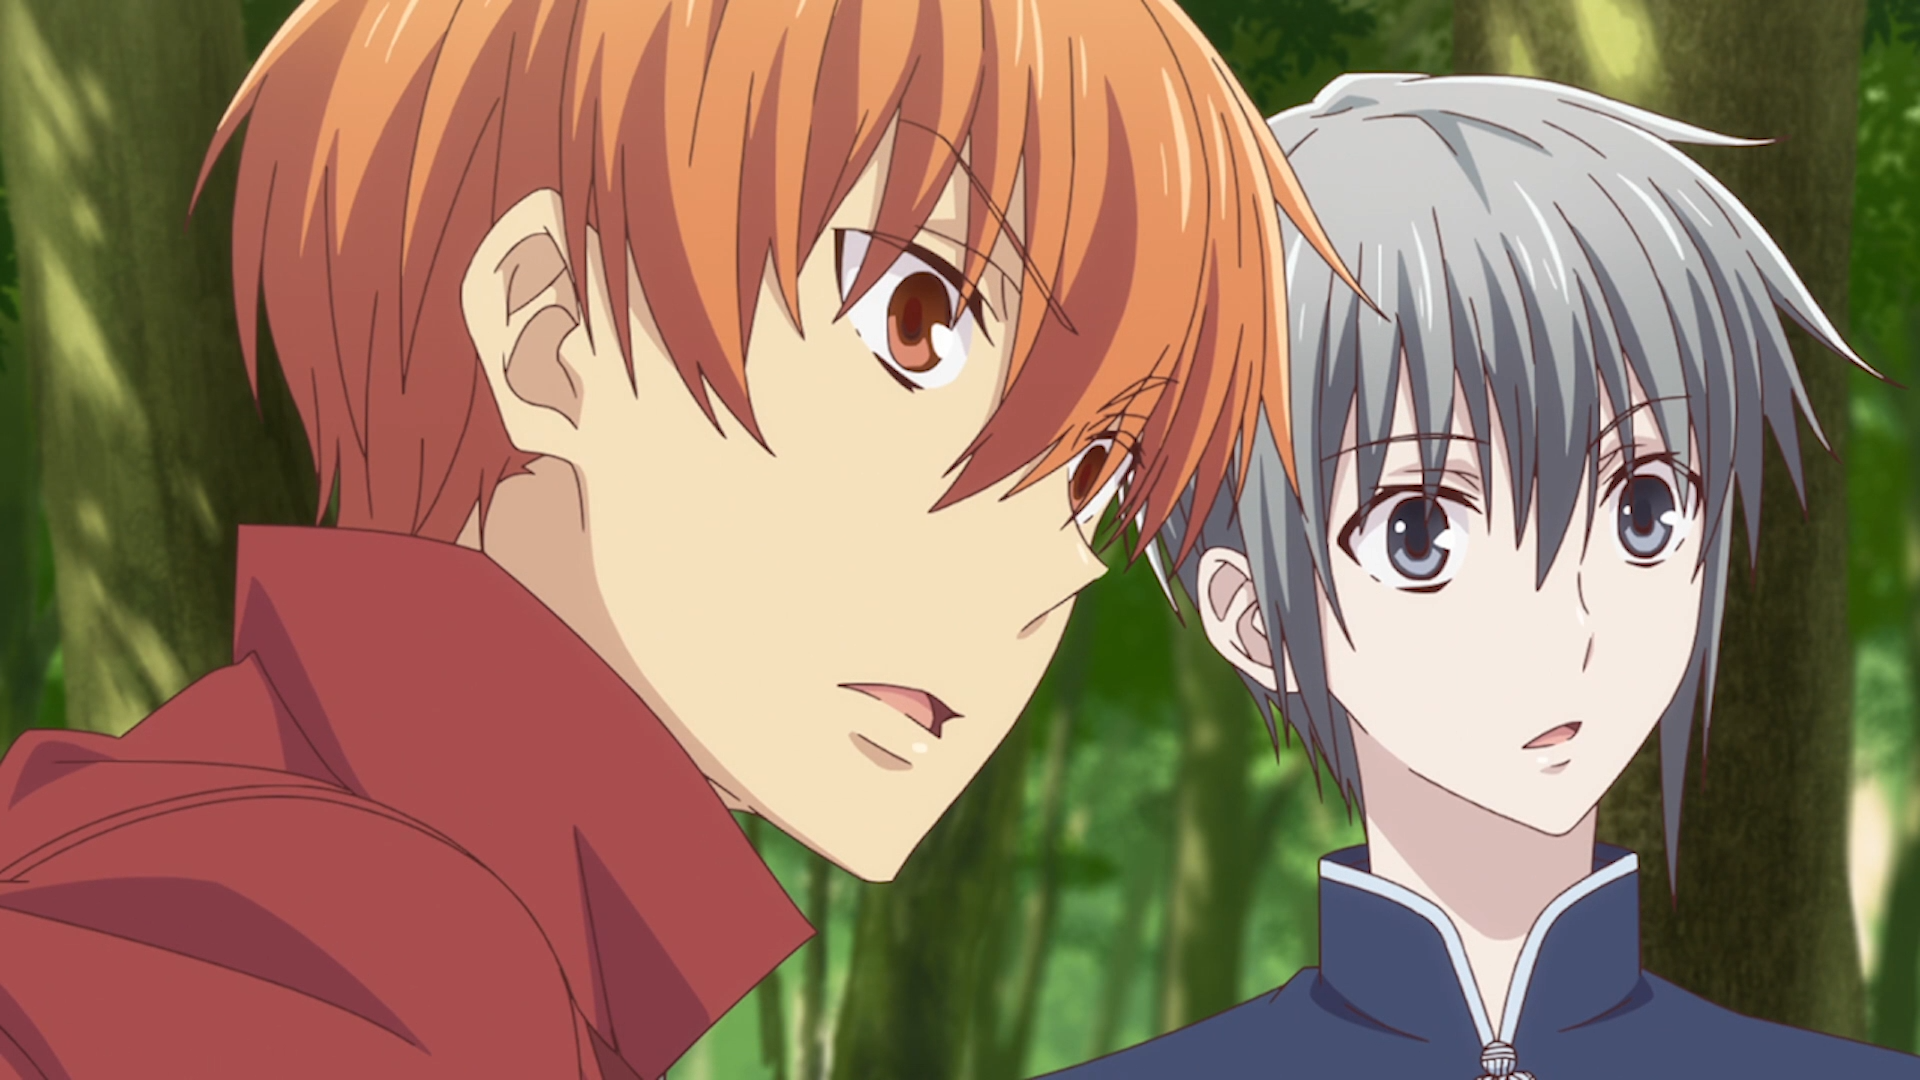 Pin on anime • fruits basket